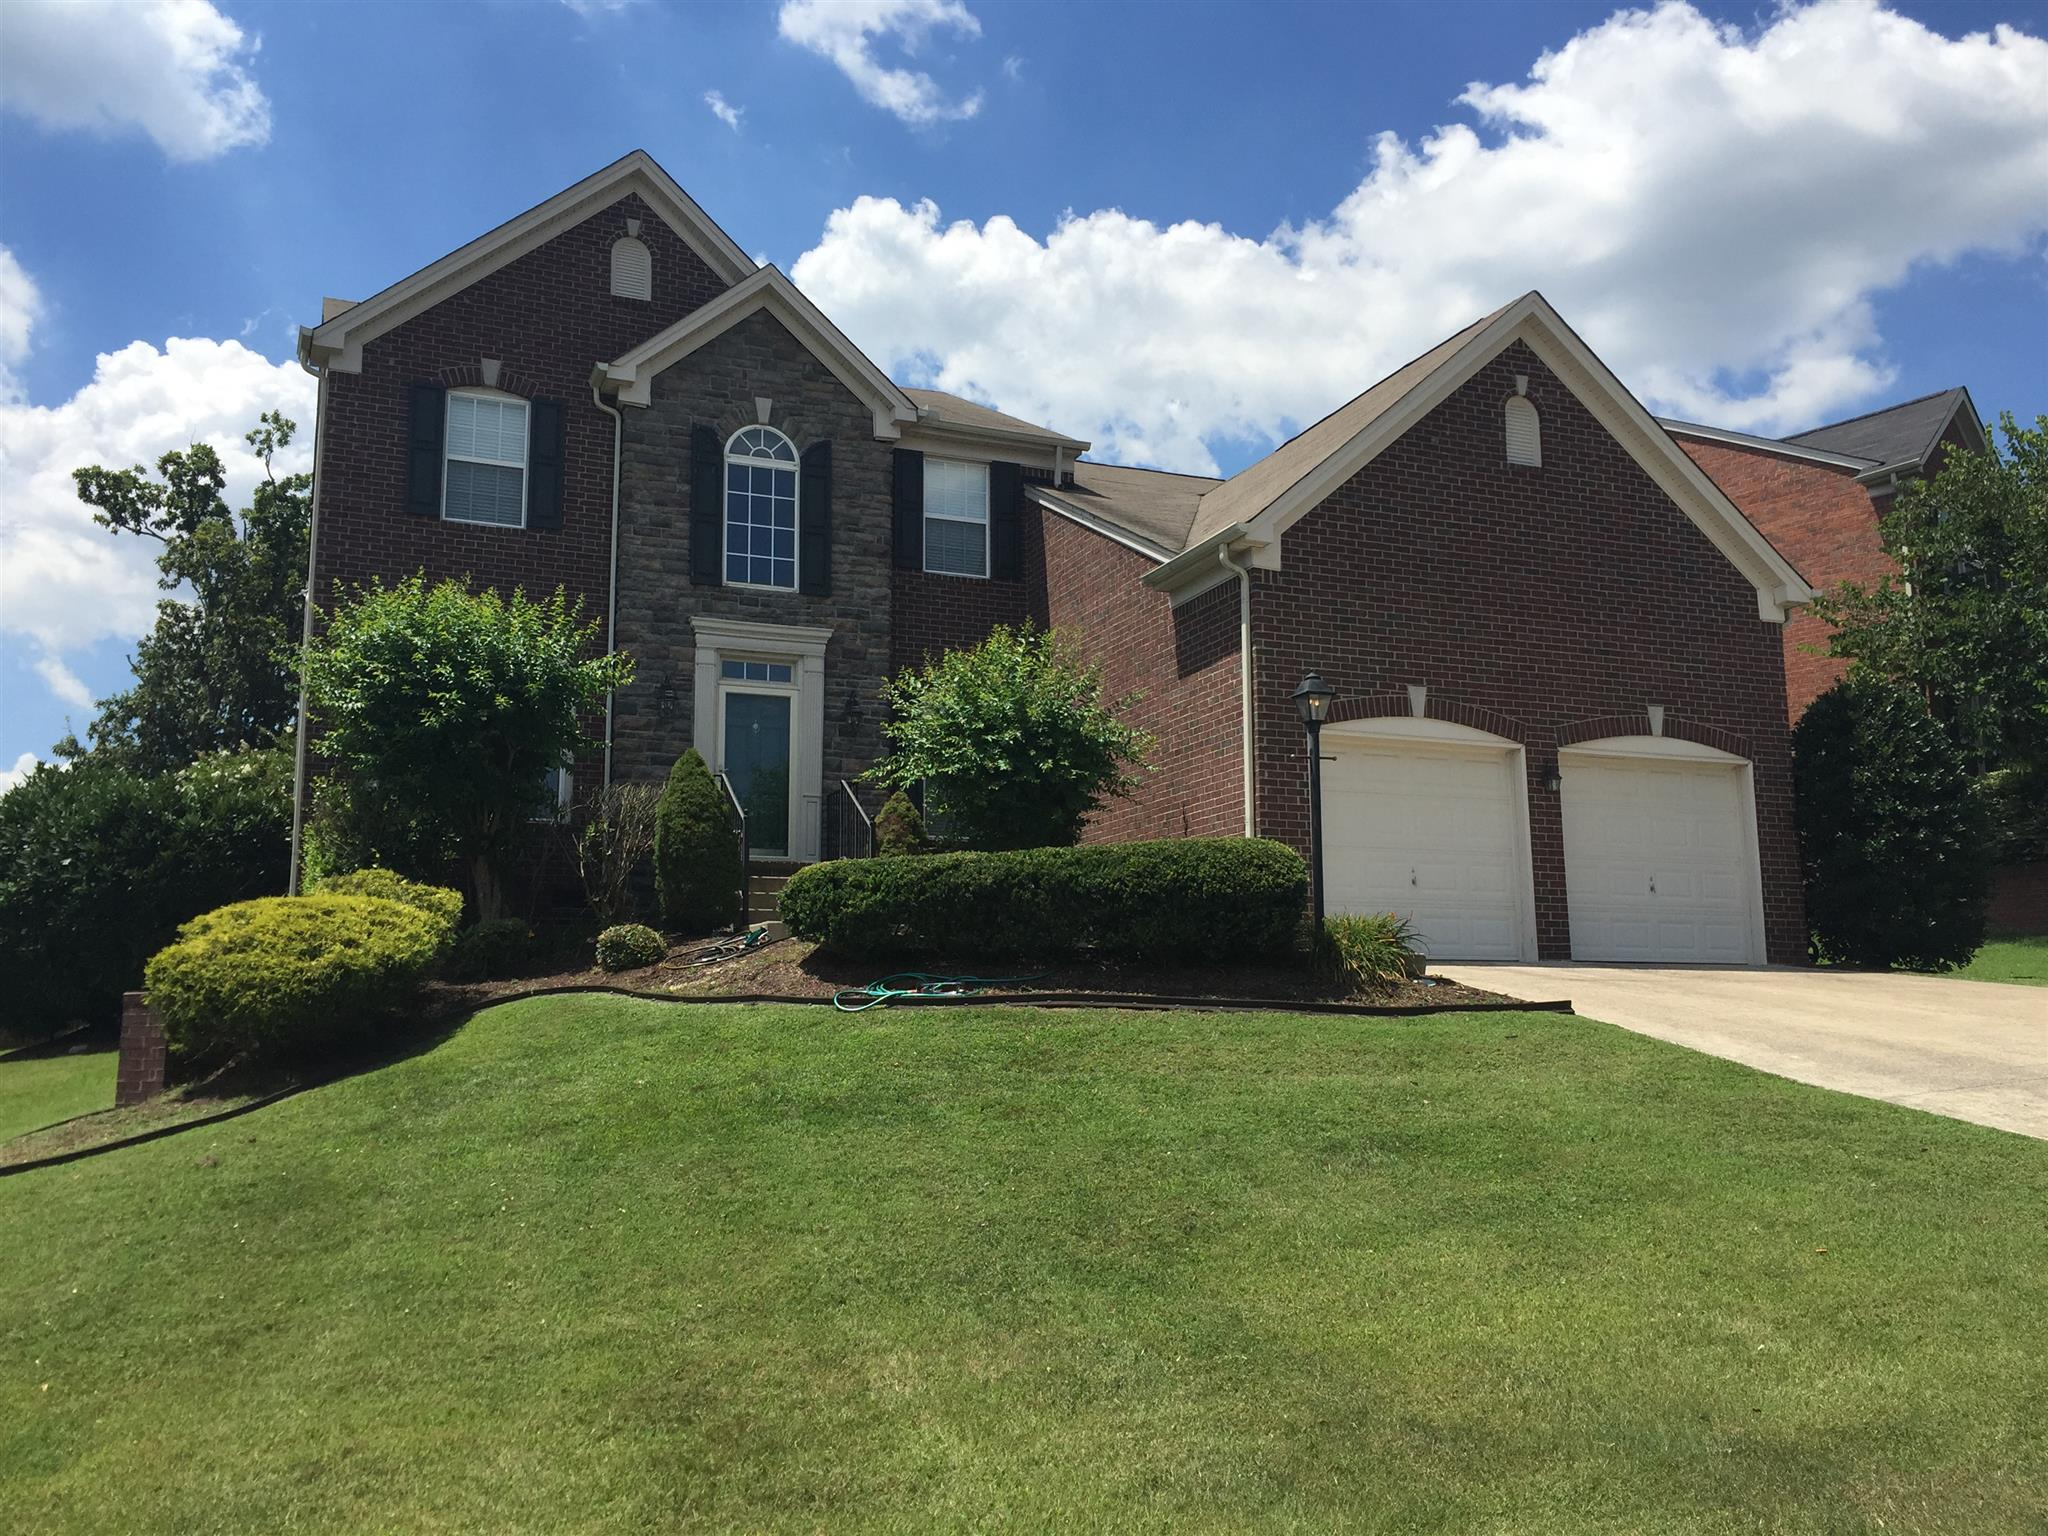 3009 Brookview Forest Dr, Nashville, TN 37211 - Nashville, TN real estate listing